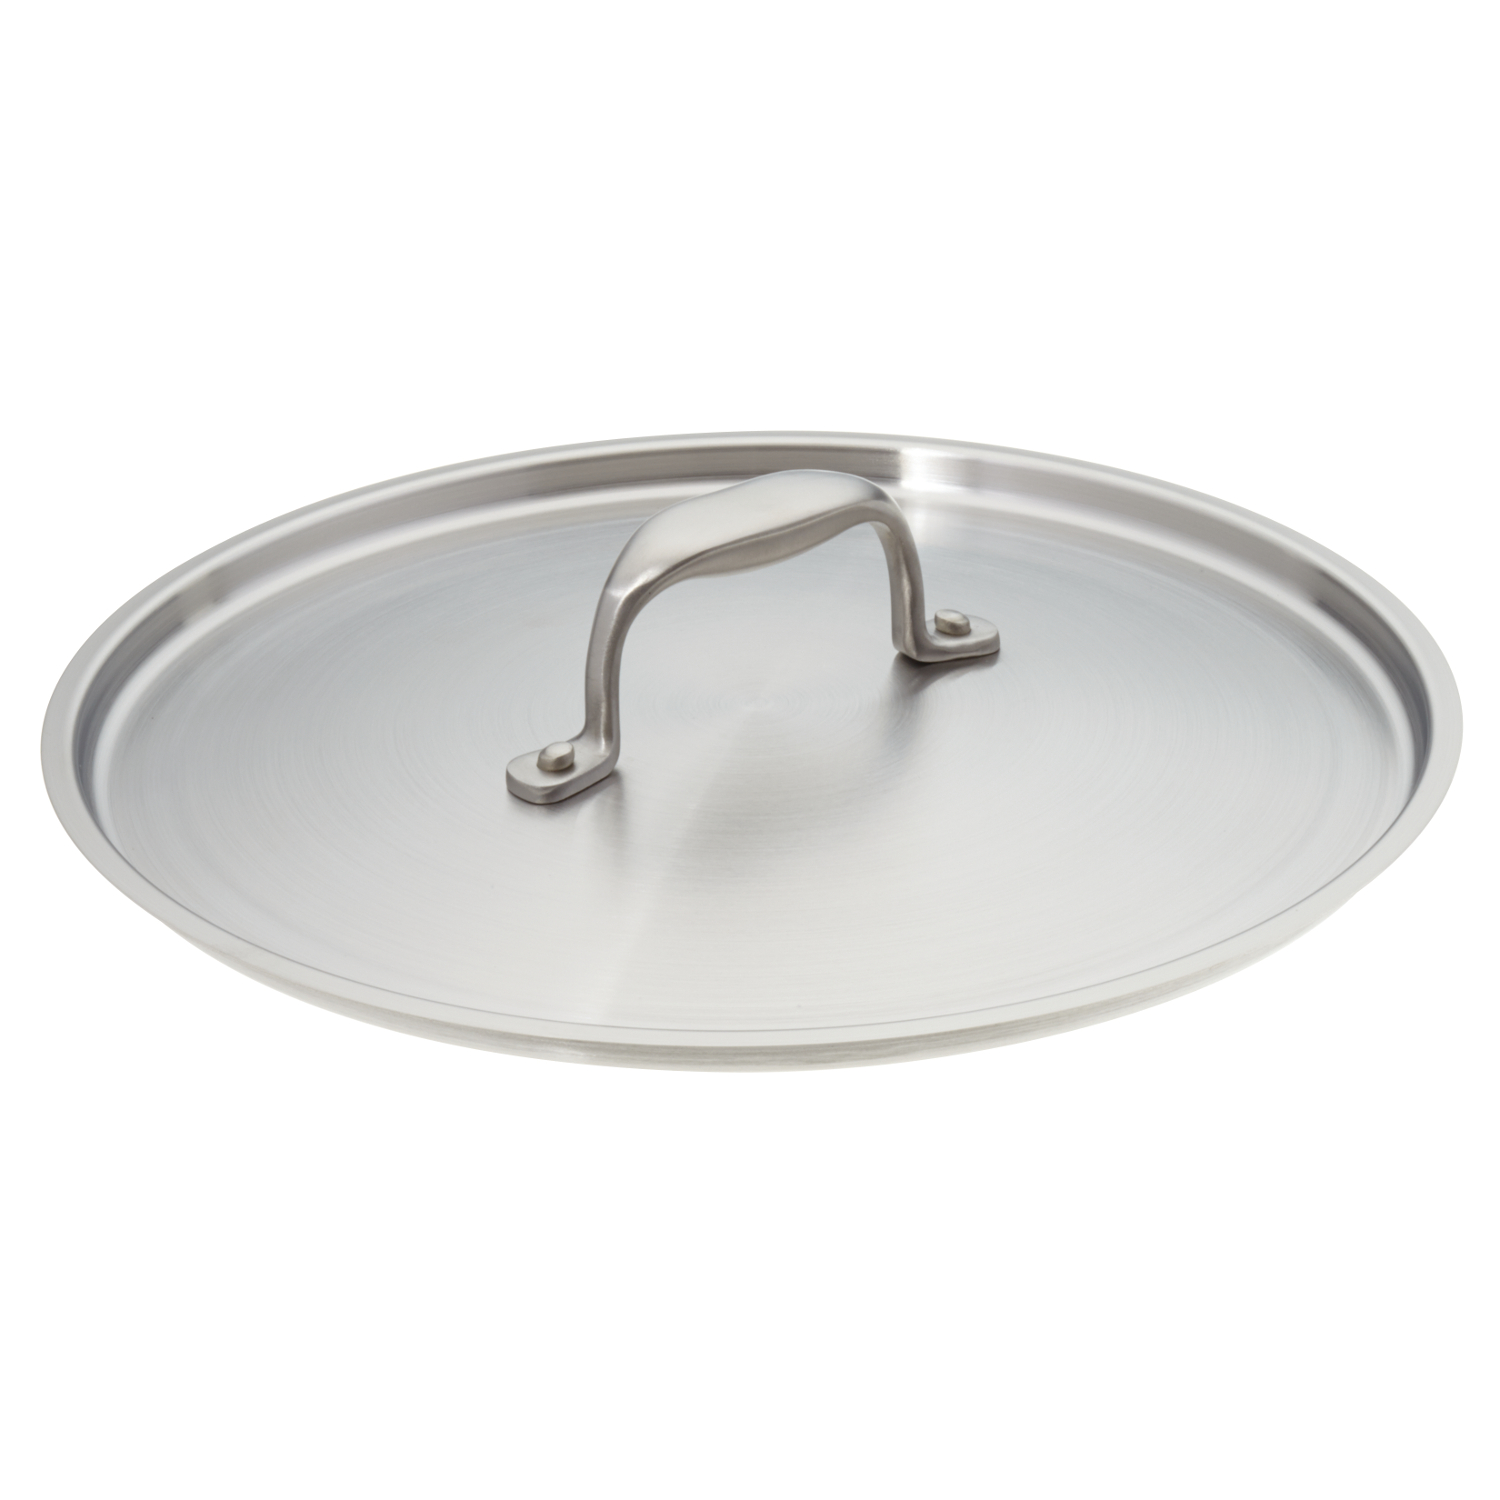 American Kitchen Cookware Stainless Steel 10 Inch Cookware Lid